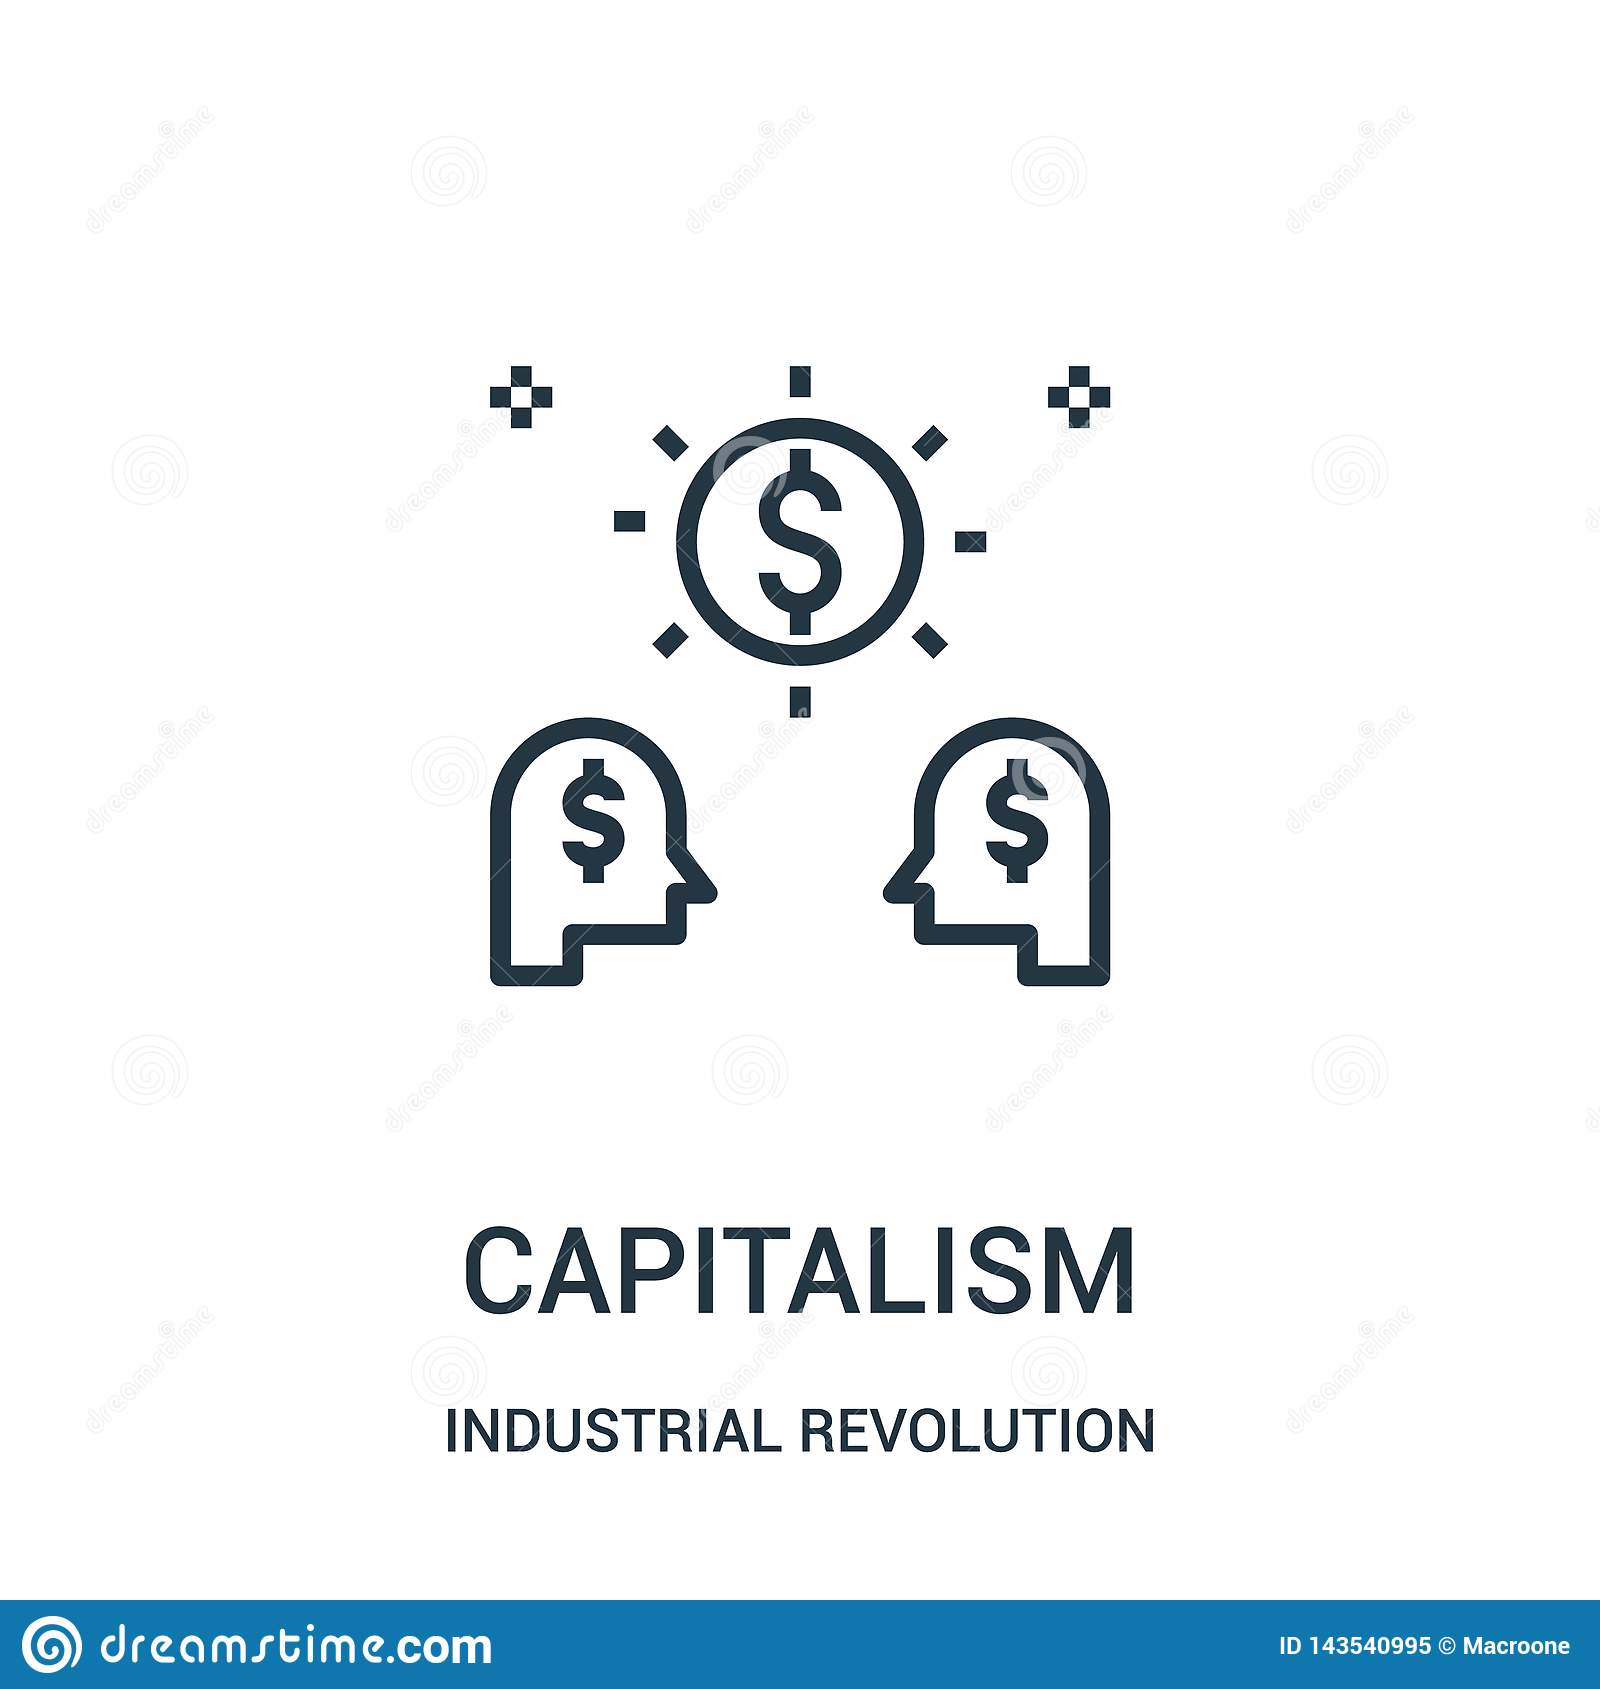 capitalism icon vector from industrial revolution collection. Thin line capitalism outline icon vector illustration